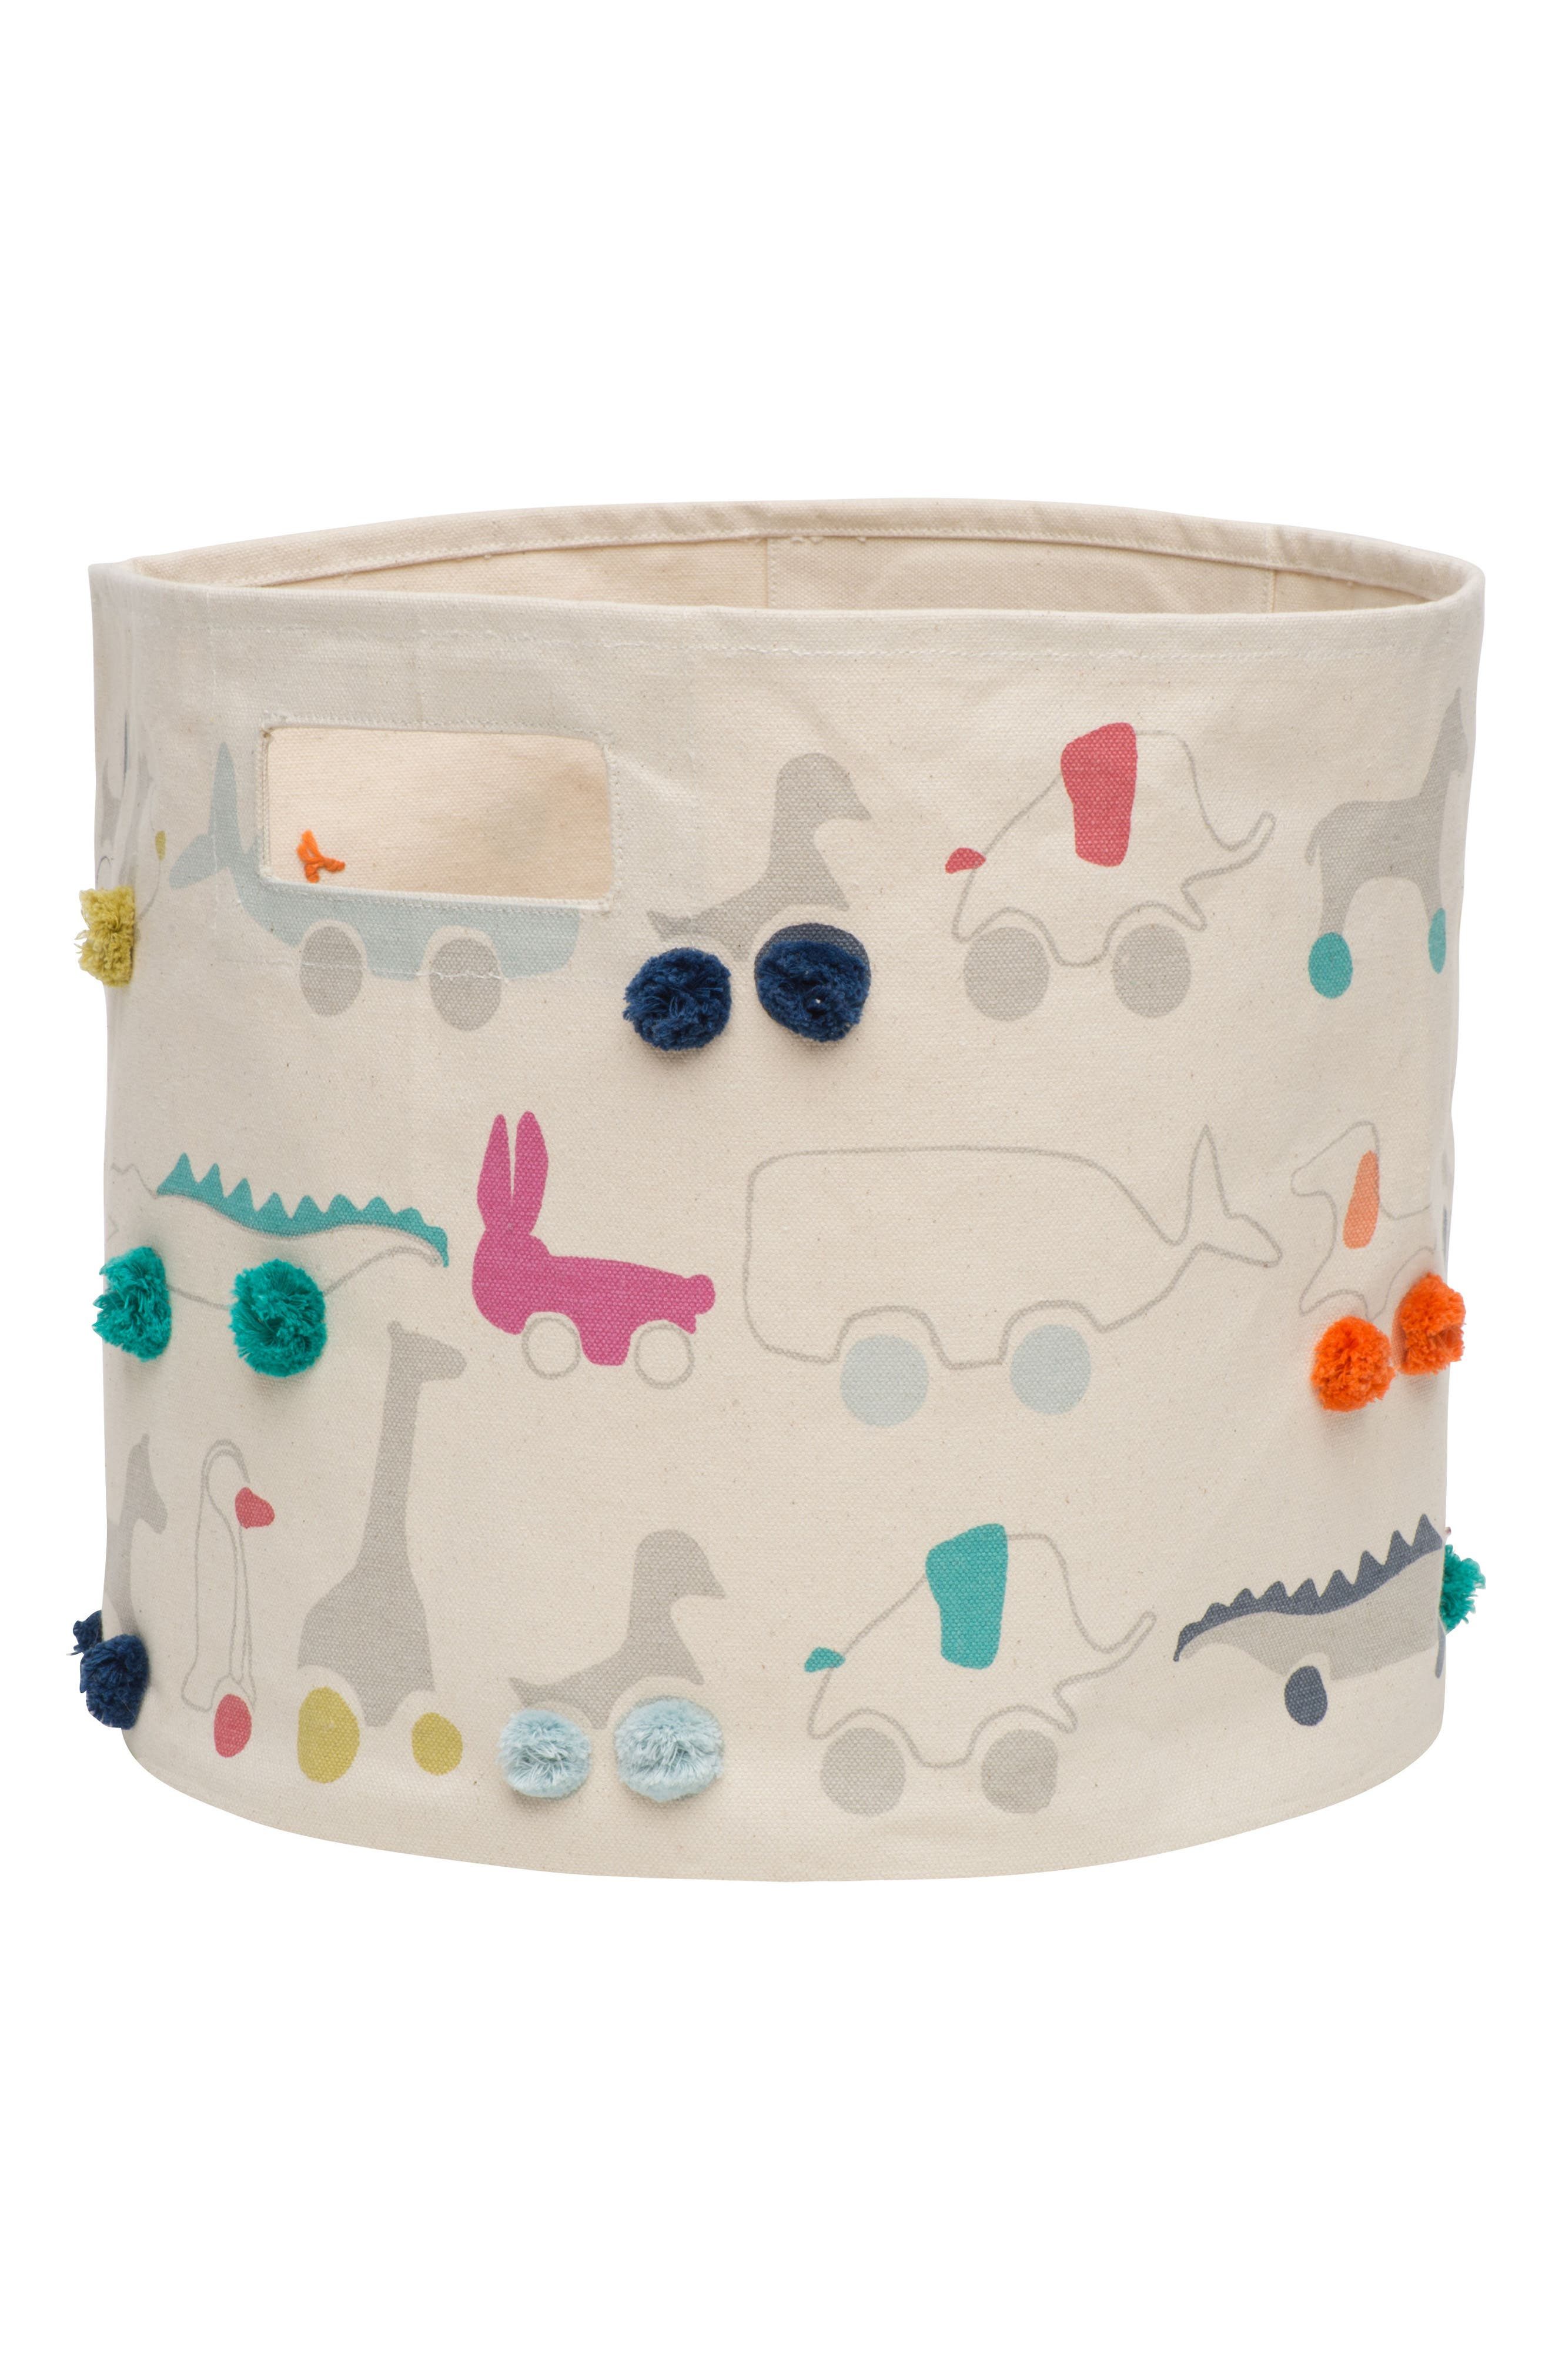 Petit Pehr Pull Toys Canvas Bin (Nordstrom Exclusive)